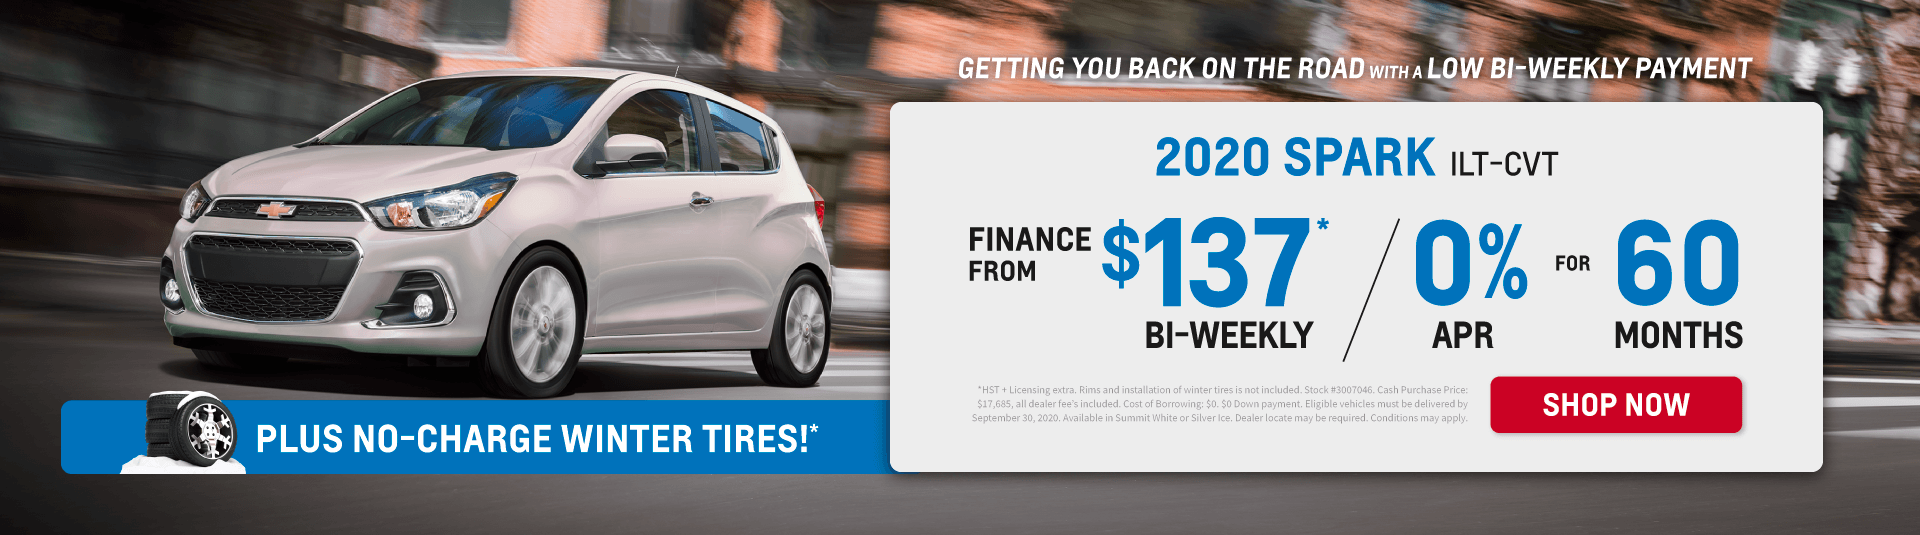 Low Bi-Weekly Payment on 2020 Chevrolet Spark in Toronto